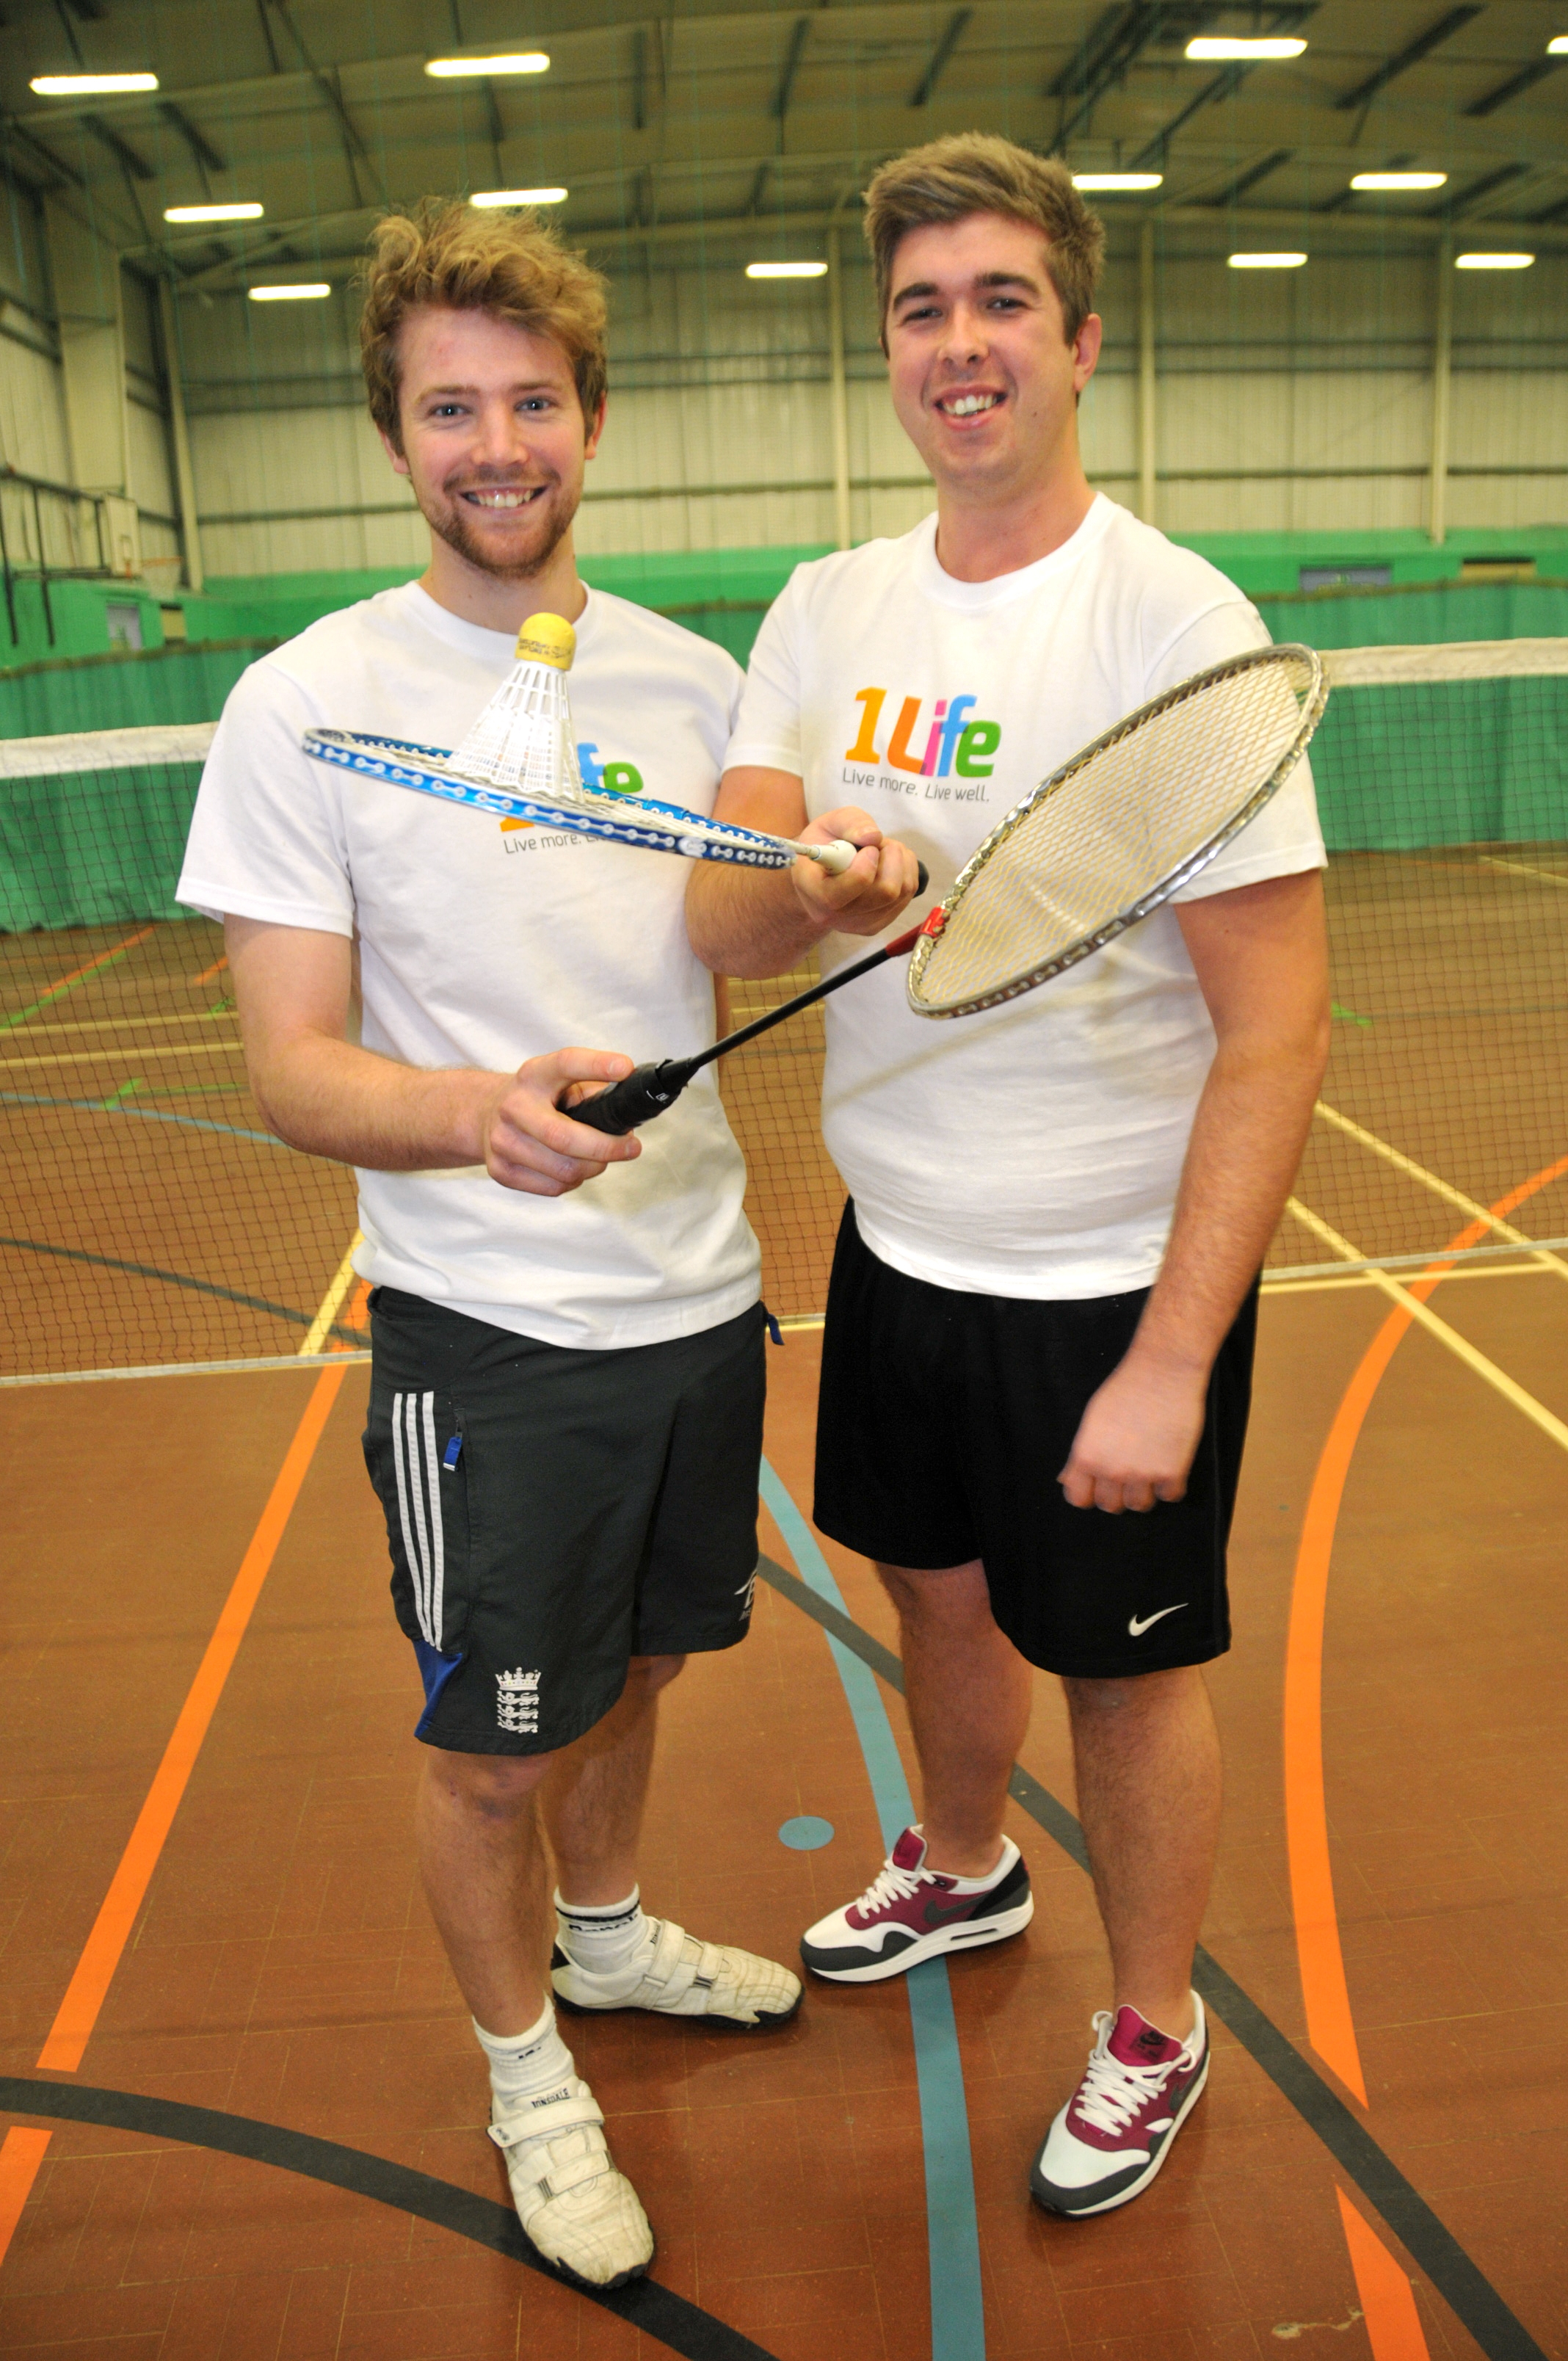 Local leisure centre managers to play longest ever badminton match